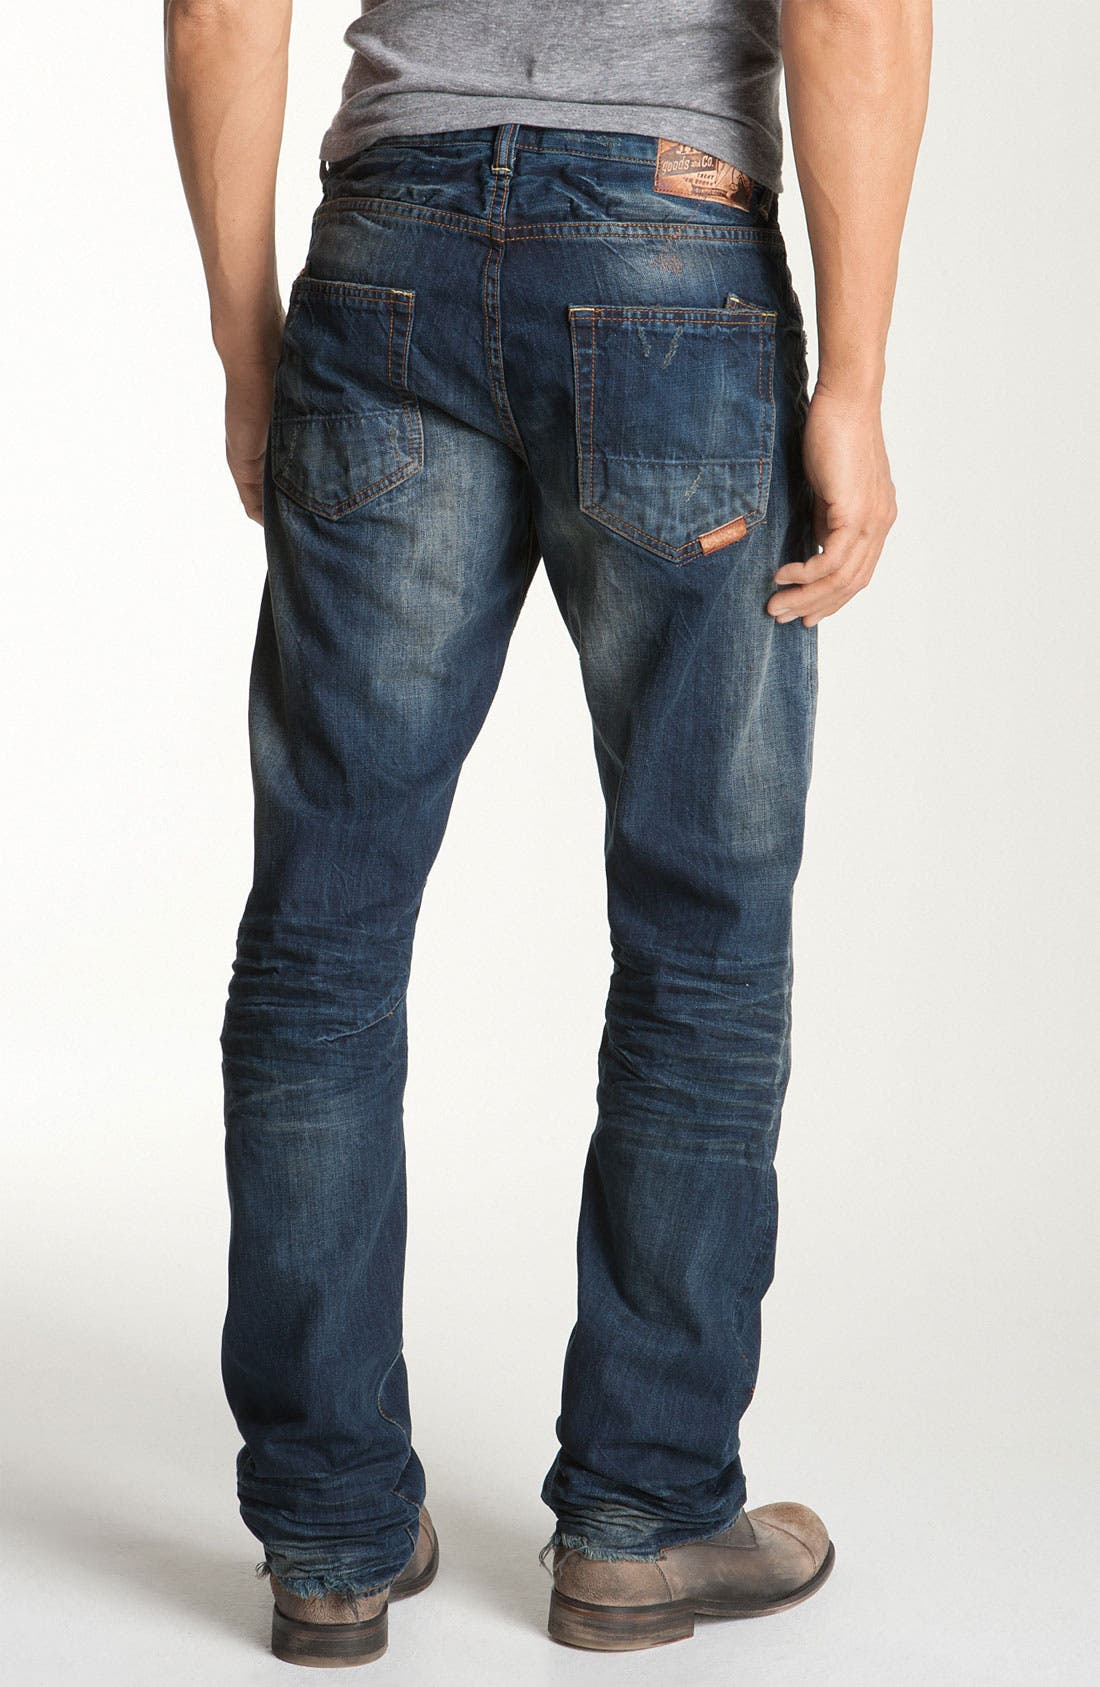 Alternate Image 1 Selected - PRPS 'Barracuda' Straight Leg Jeans (Enzyme)